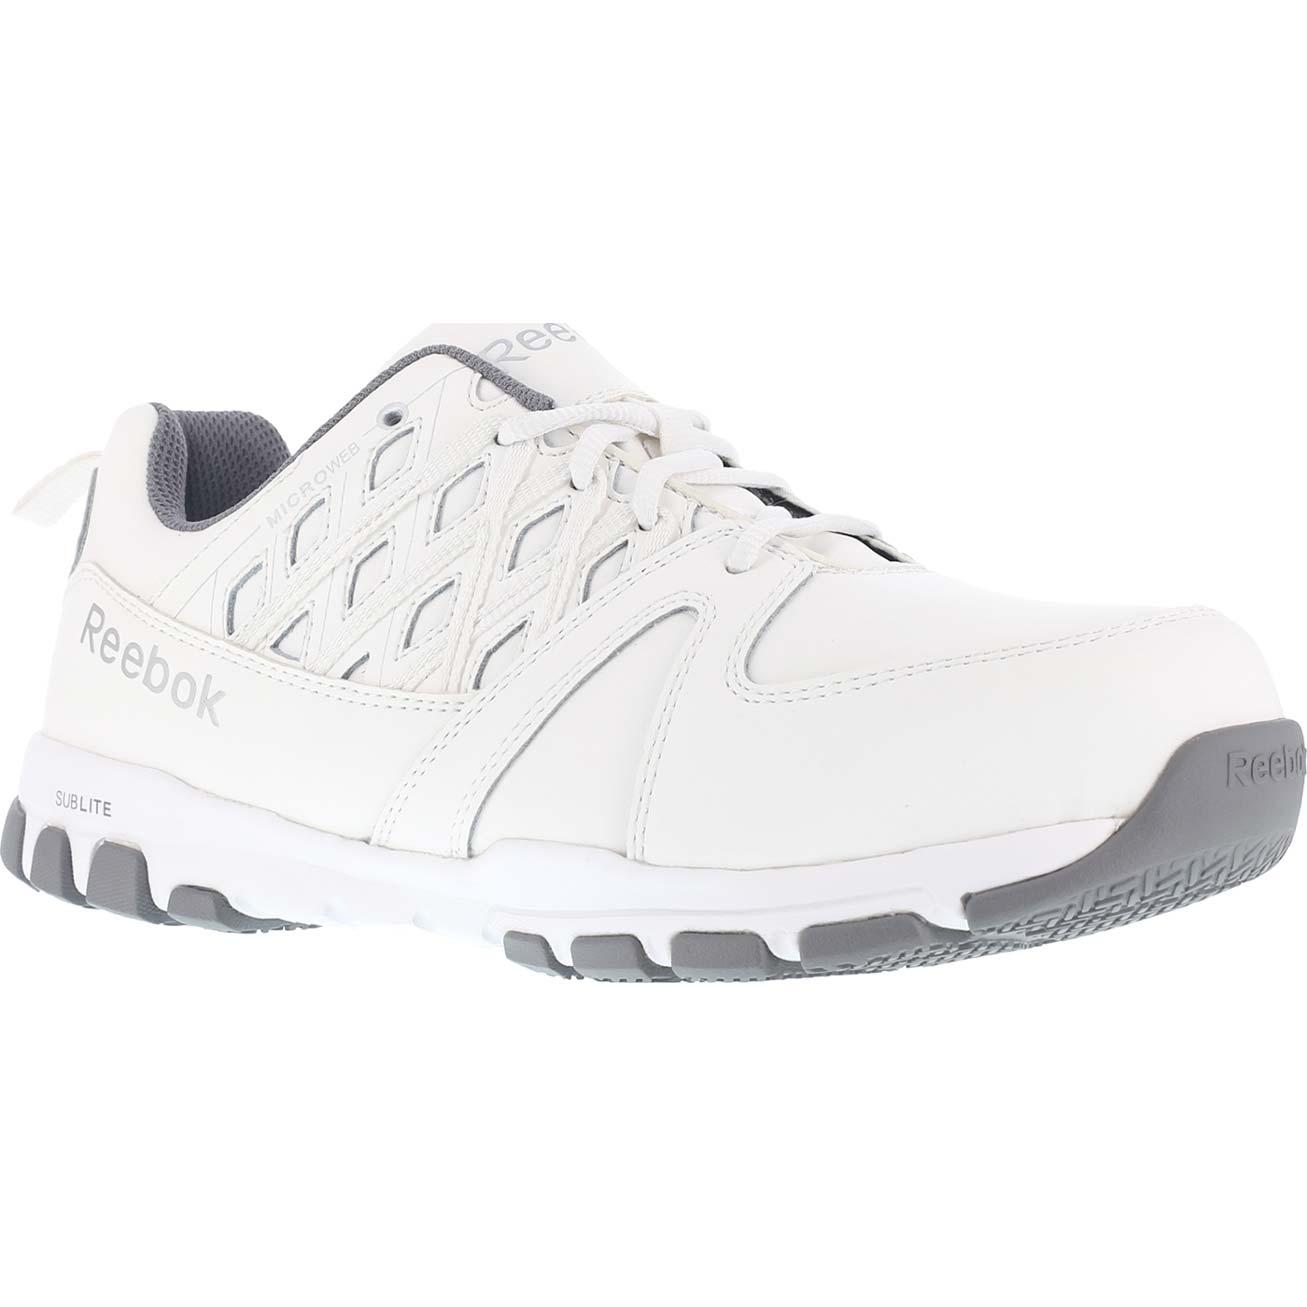 9384ec2fe59 Reebok Sublite Work Steel Toe Static-Dissipative Work Athletic ShoeReebok  Sublite Work Steel Toe Static-Dissipative Work Athletic Shoe